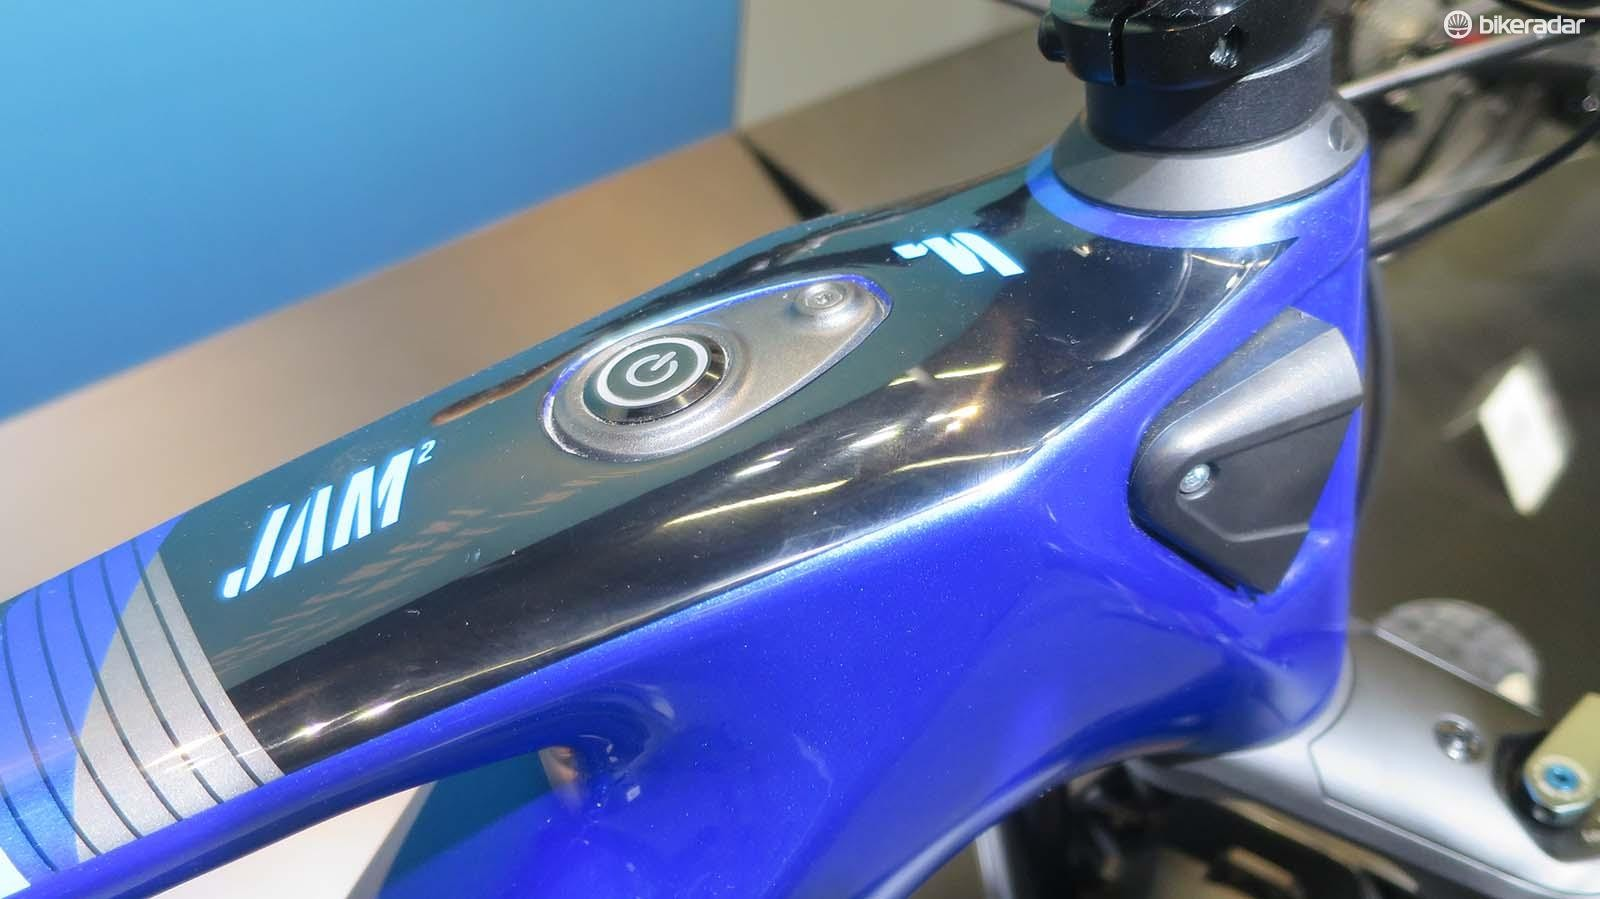 Power up the Drifter with its top tube mounted button